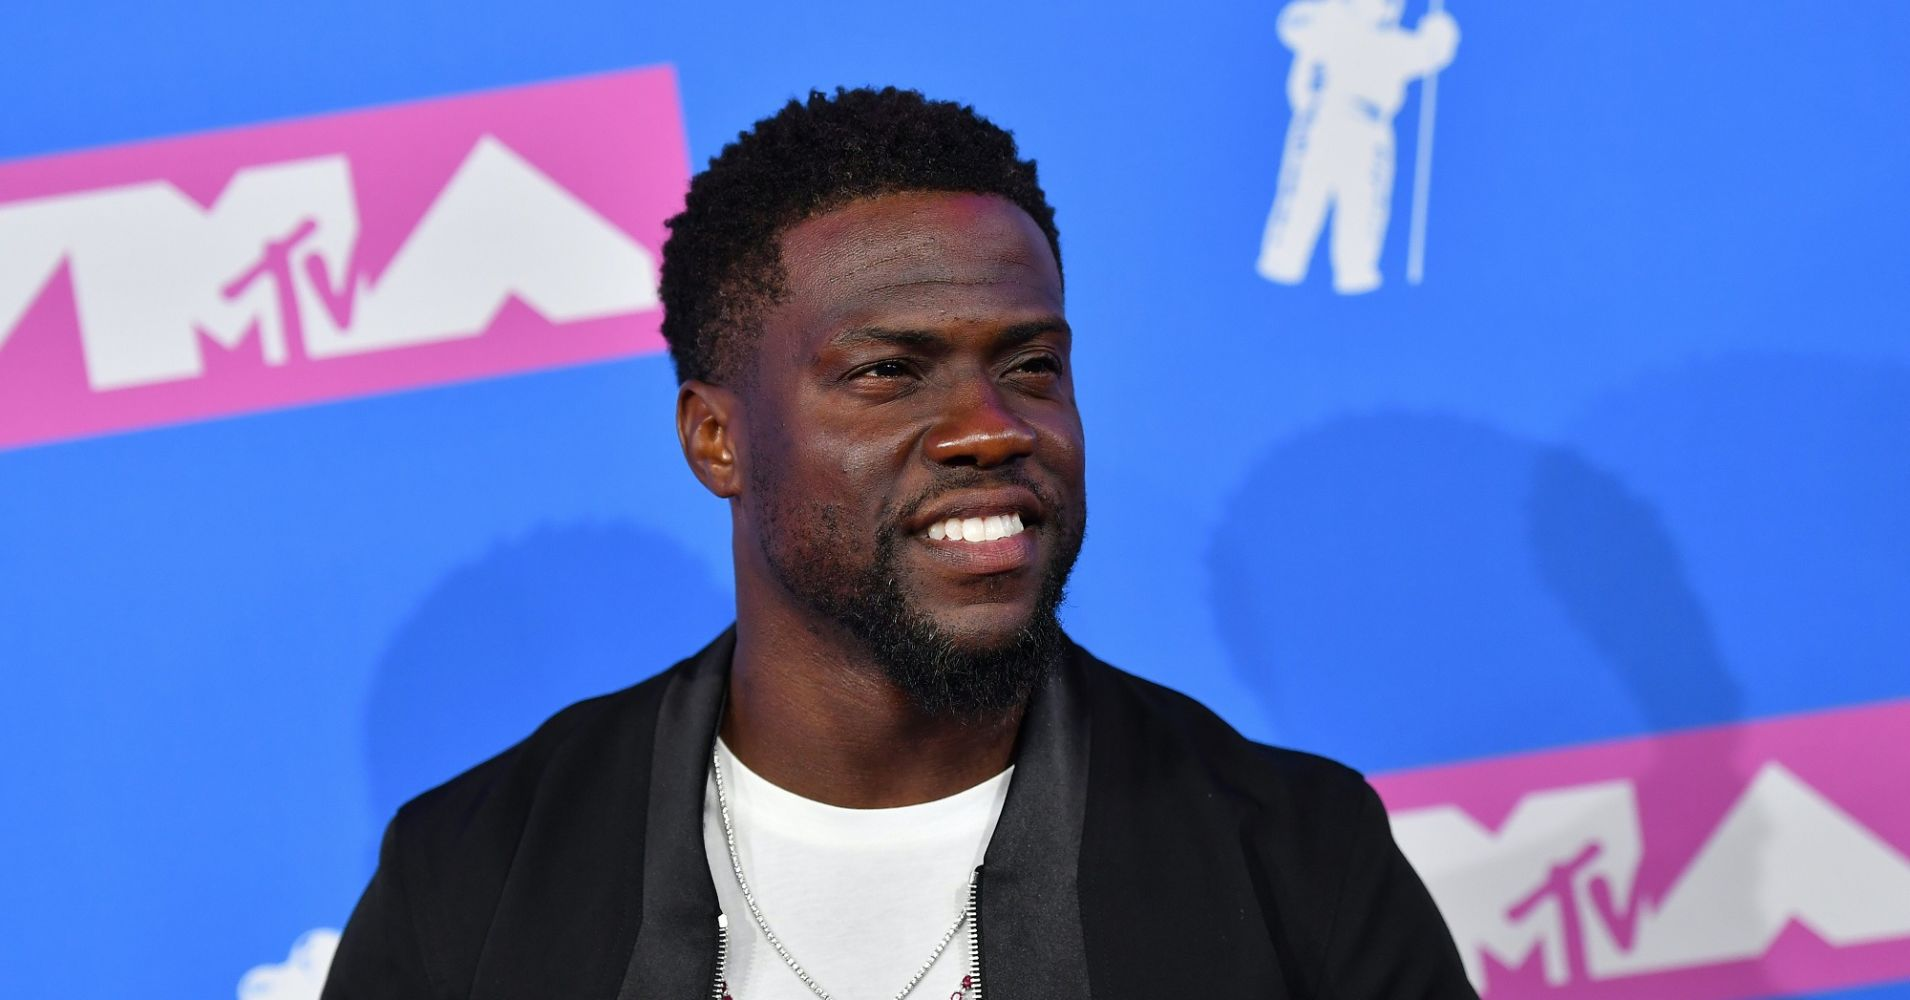 Kevin Hart  Expand Portfolio With Latest Investment Into Sports Nutrition Company Nutrabolt